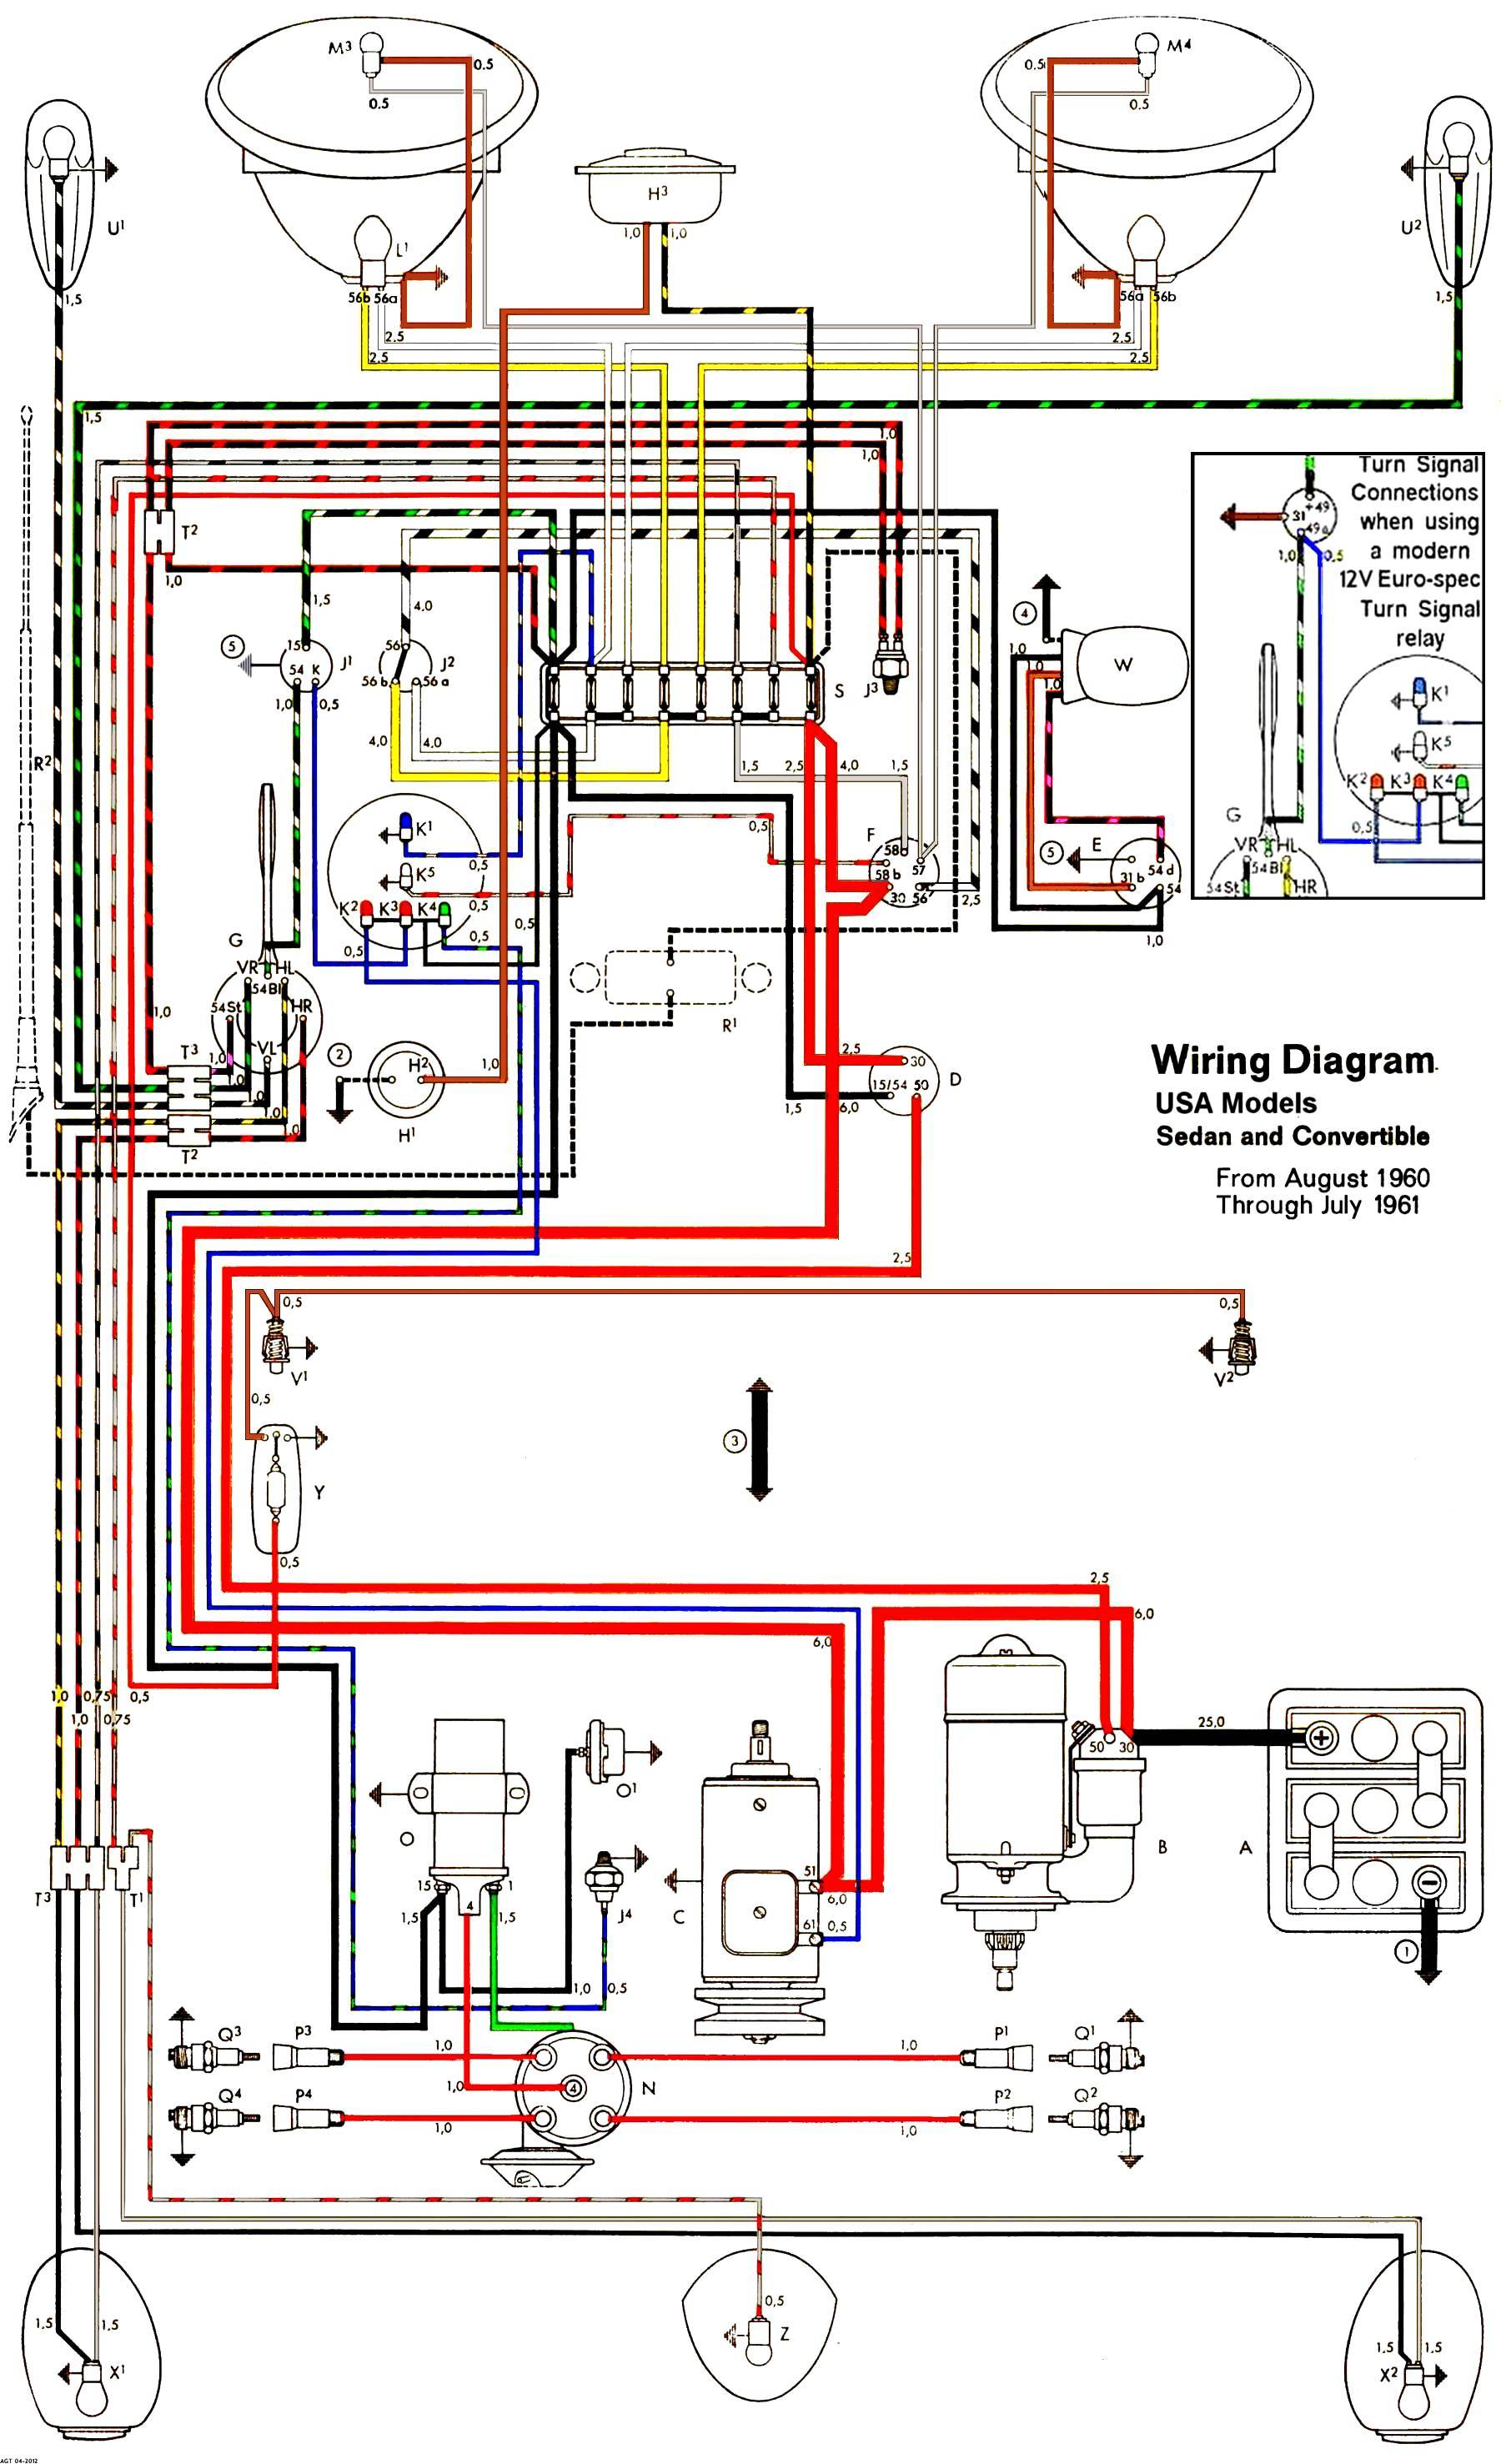 1970 vw relay diagram 13 artatec automobile de \u2022thesamba com type 1 wiring diagrams rh thesamba com alternator relay diagram 1977 vw bus wiring